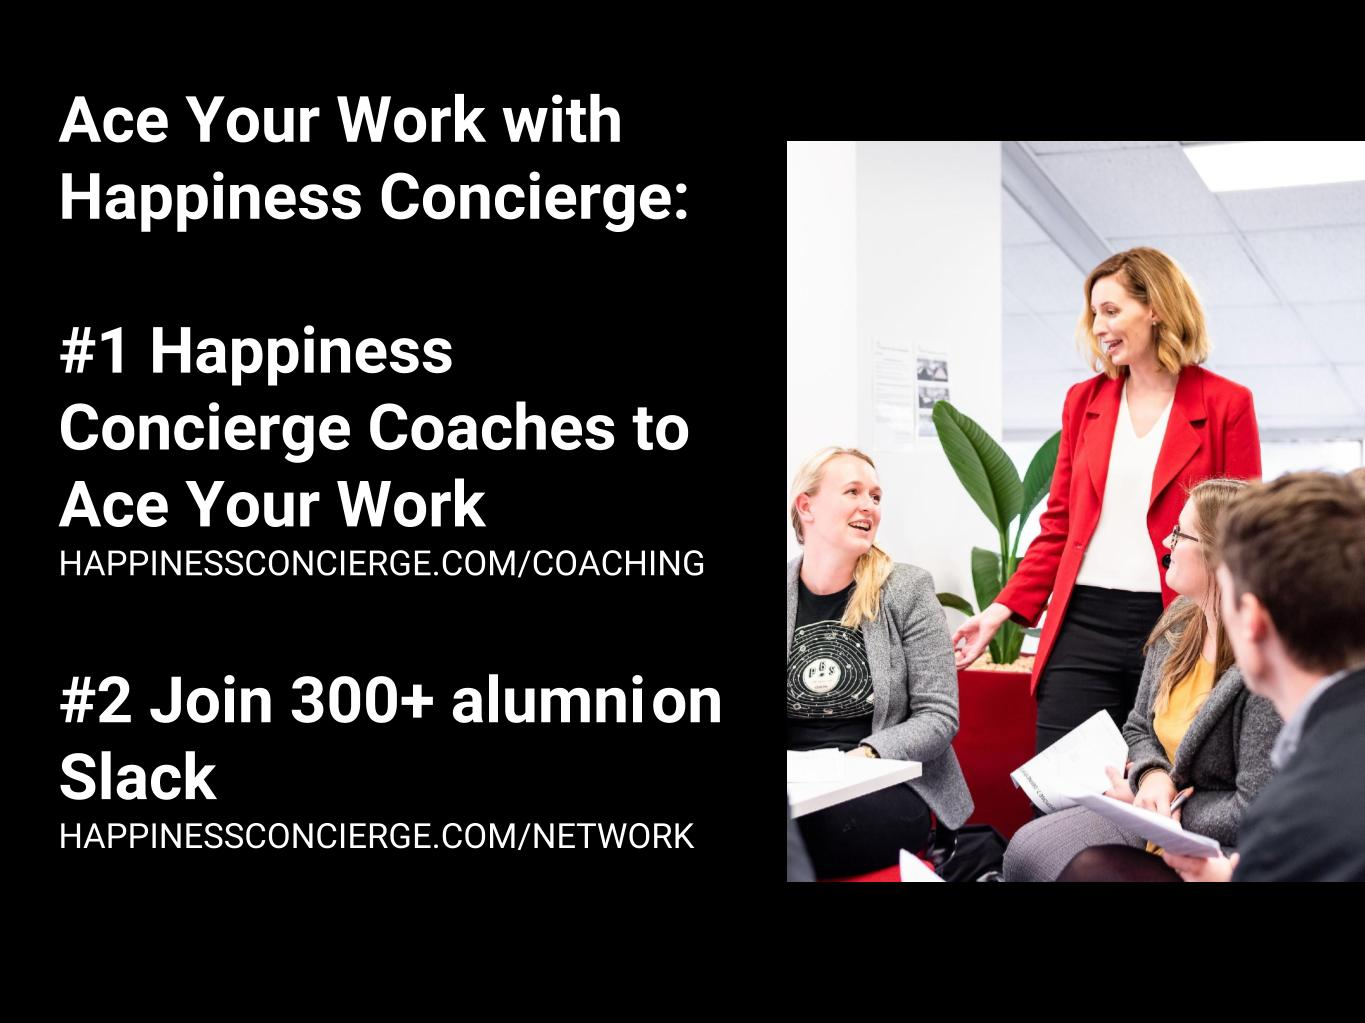 happinessconcierge.com/coaching  and  happinessconcierge.com/network